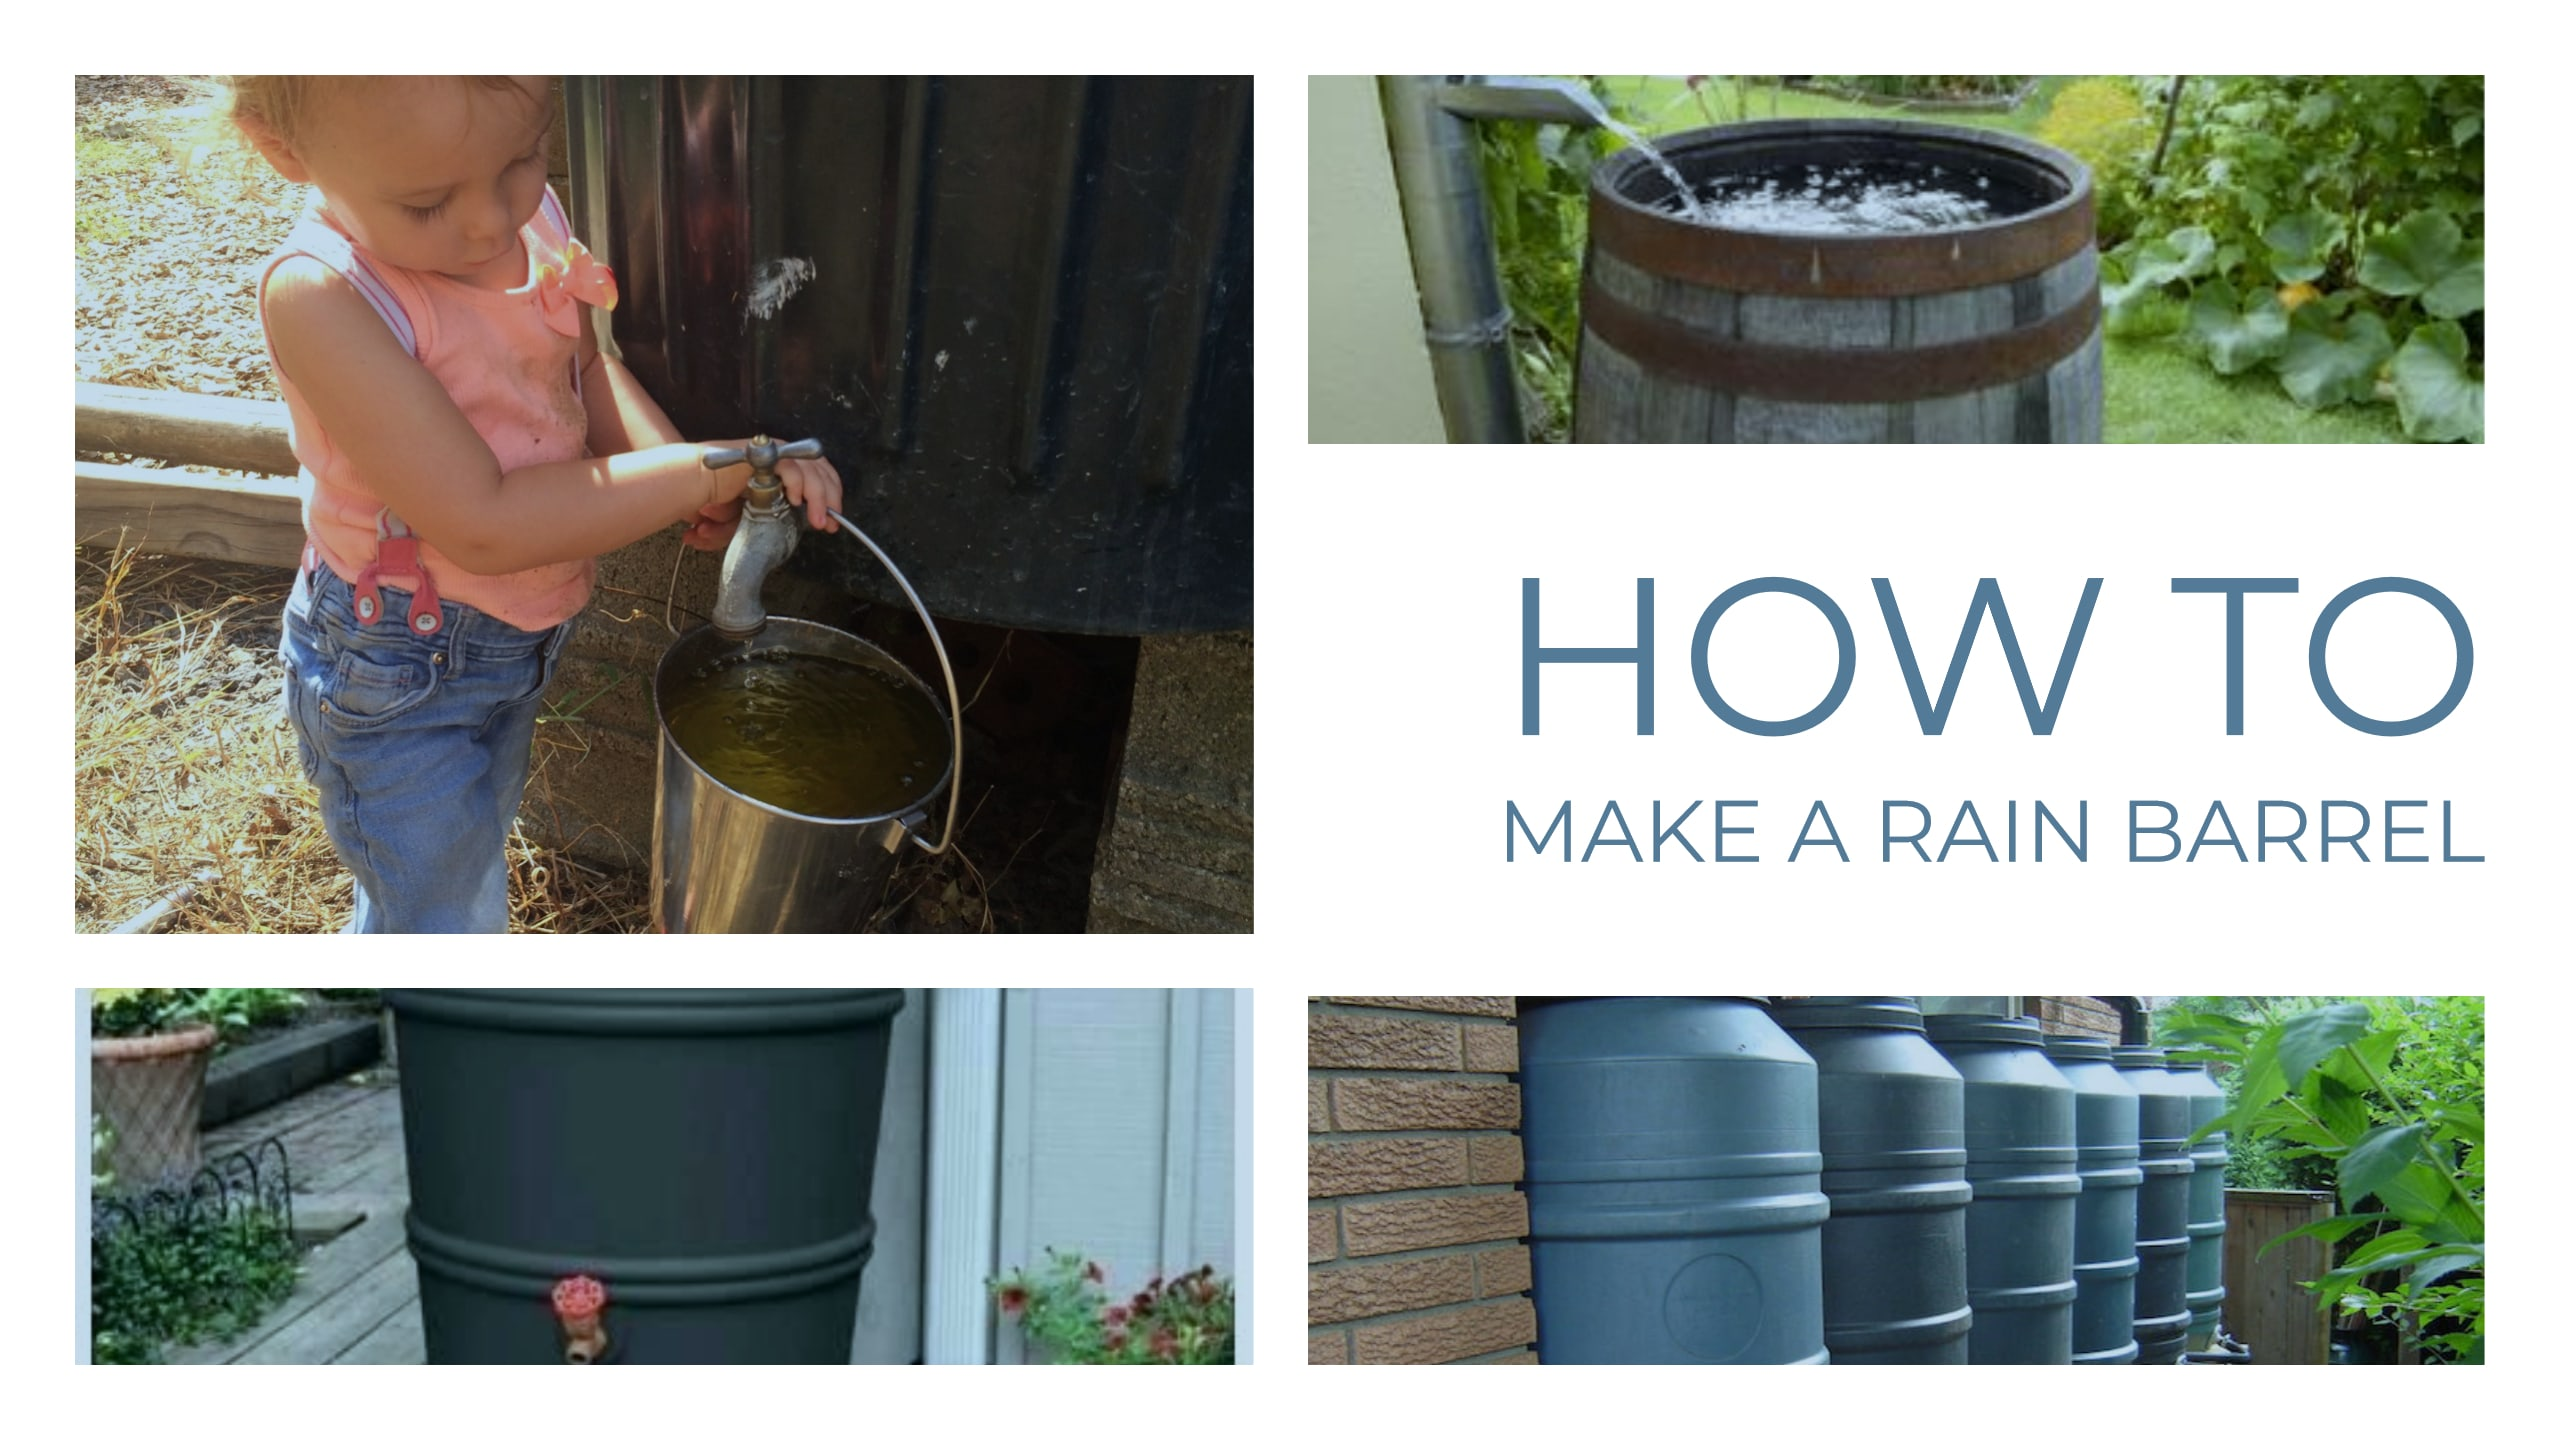 How to Make a Rain Barrel